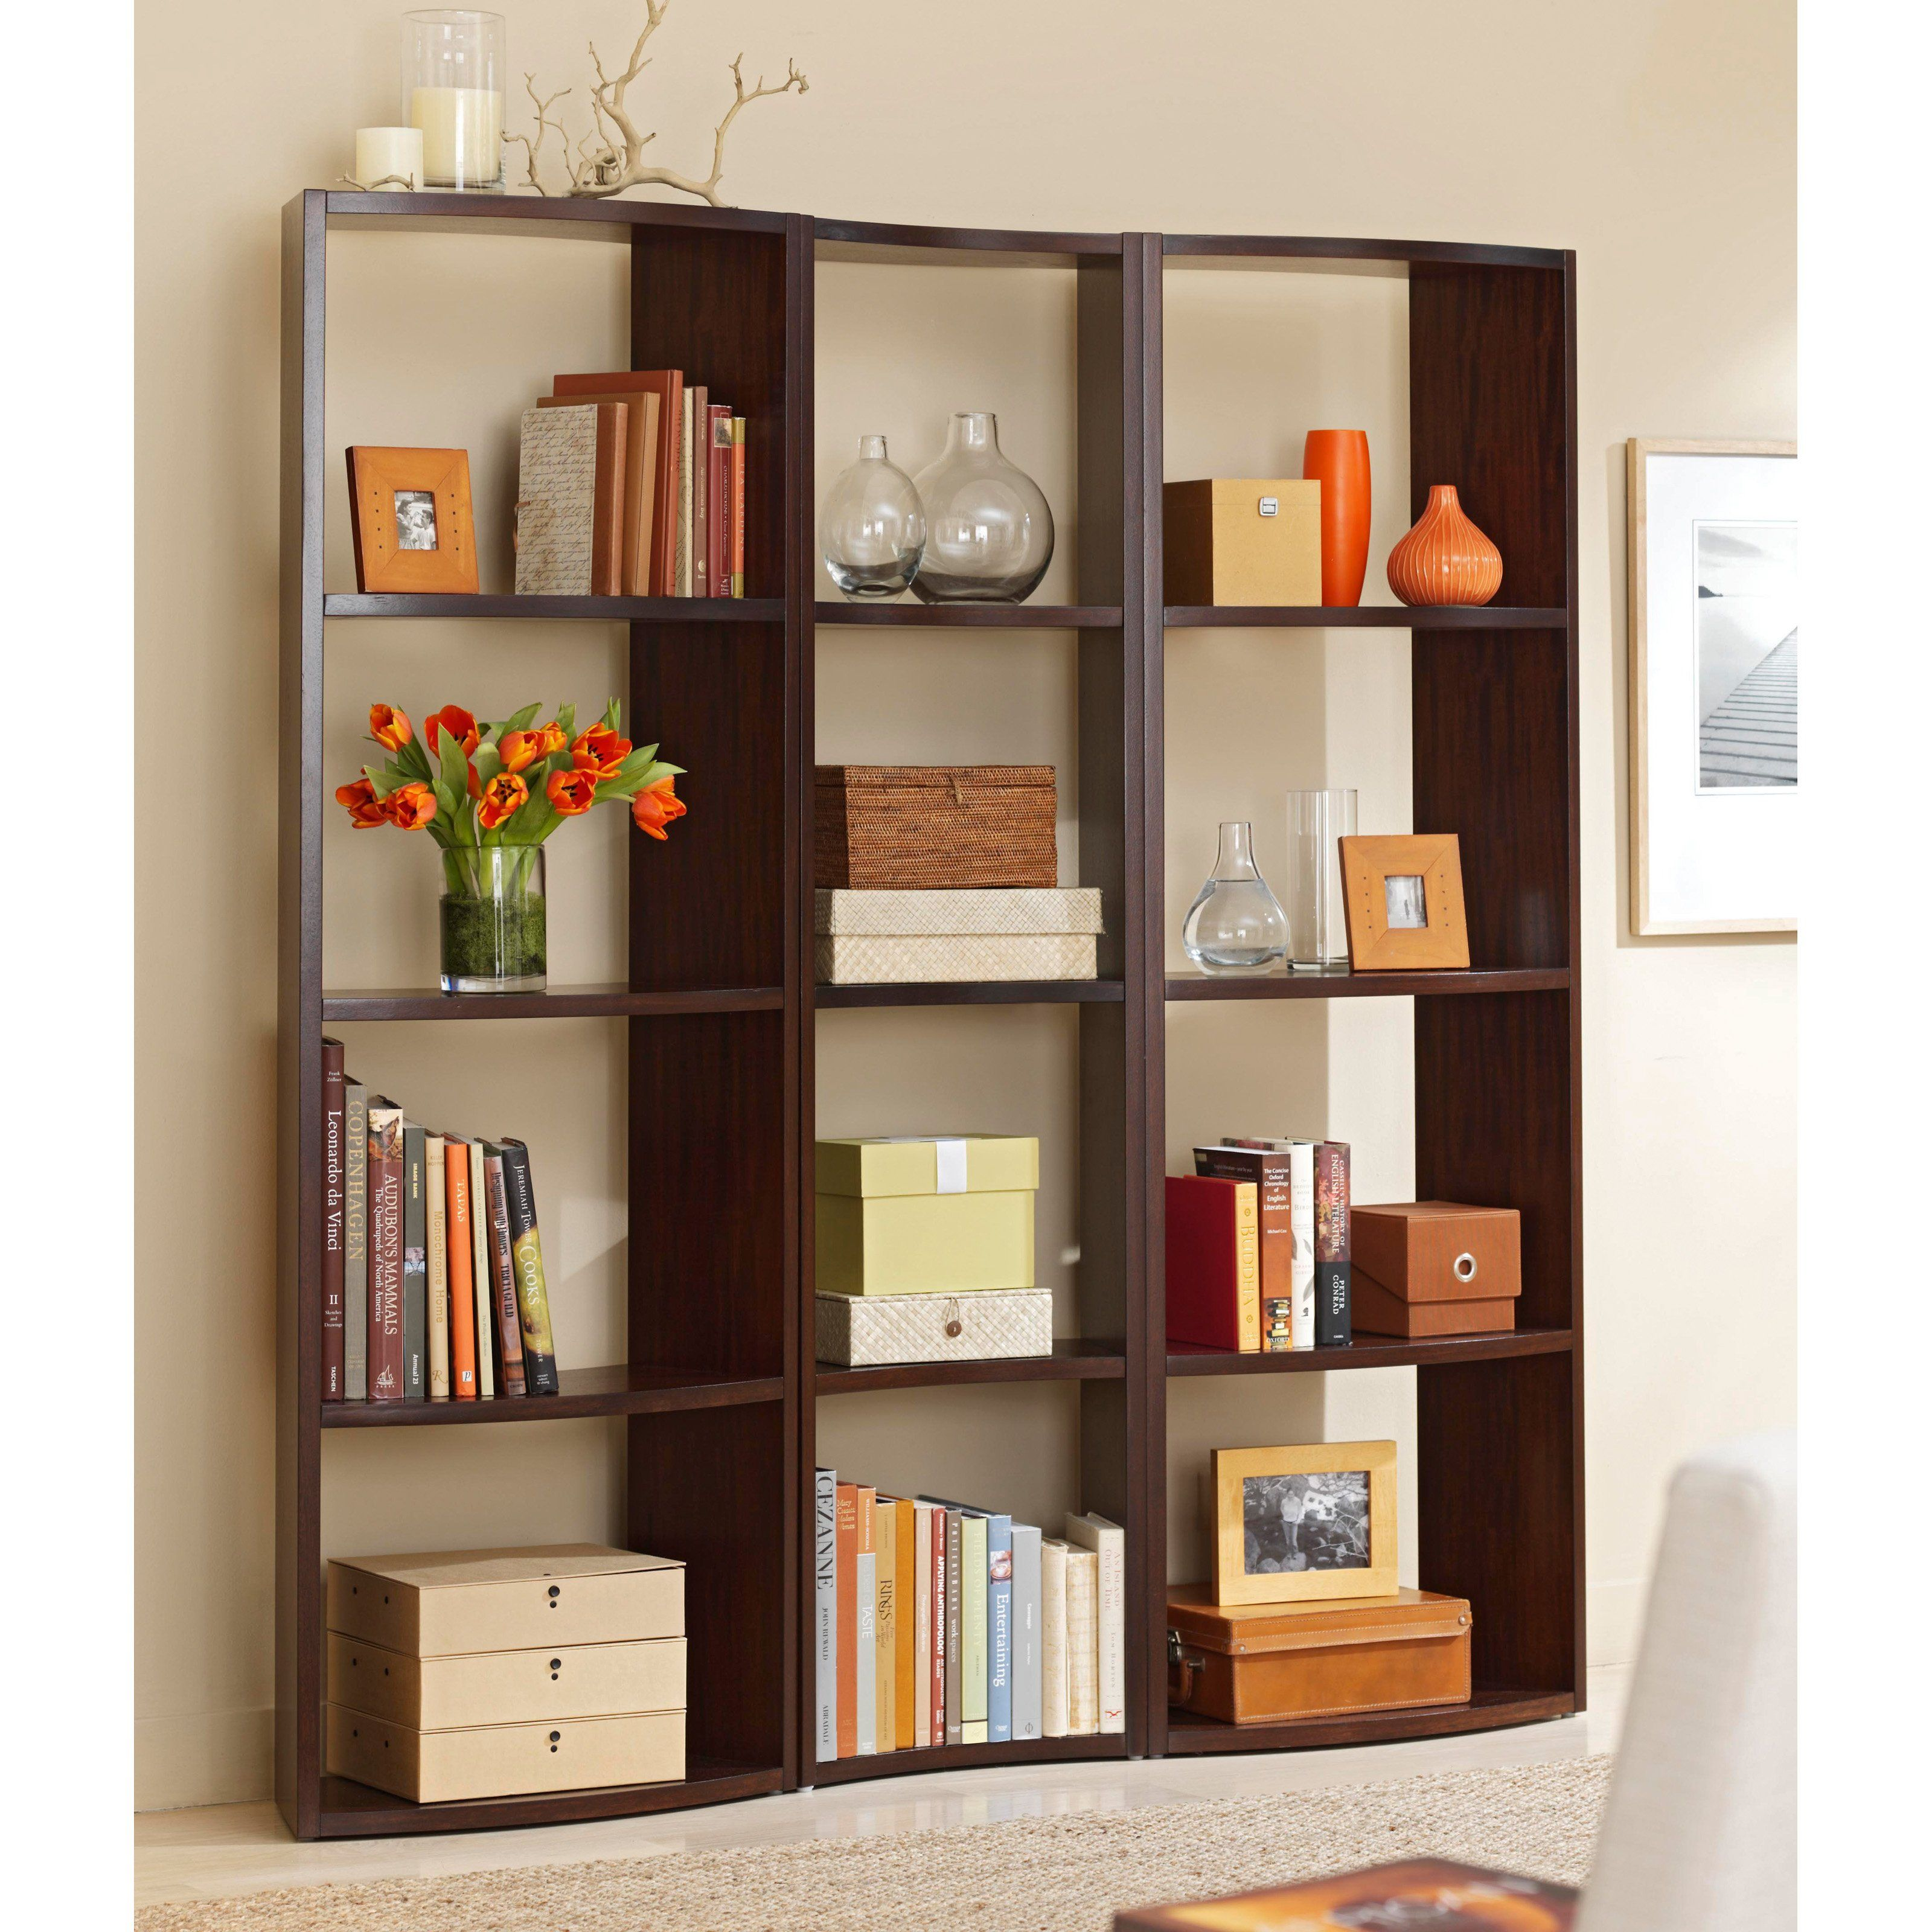 One Single Bookcase Against A Wall Provides A Tall Slim Space For  Displaying Books Framed Photos